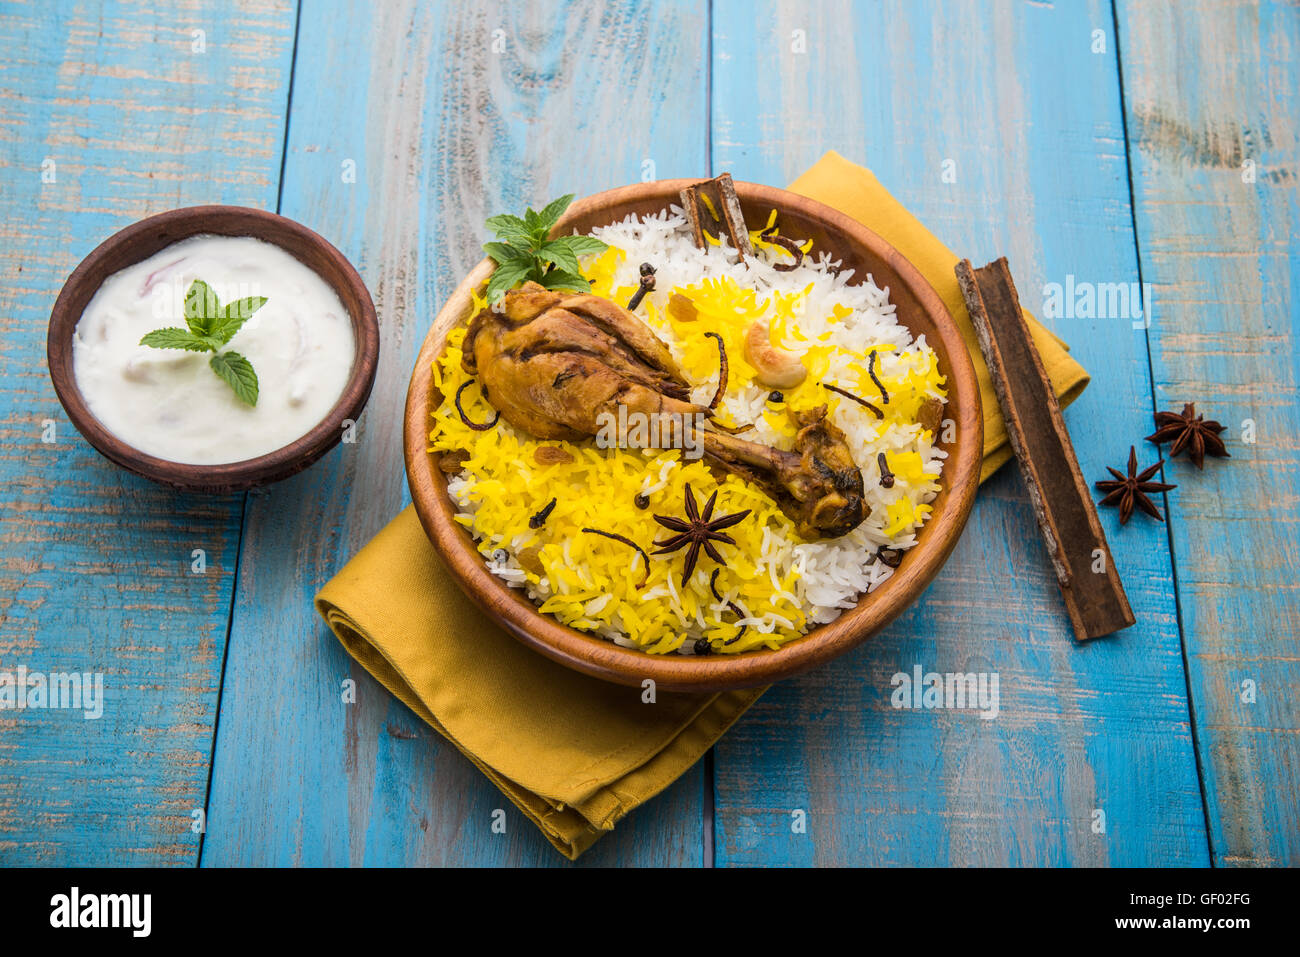 Indian non veg dish stock photos indian non veg dish stock images chicken biryani with yogurt dip on beautiful moody background selective focus stock image forumfinder Images